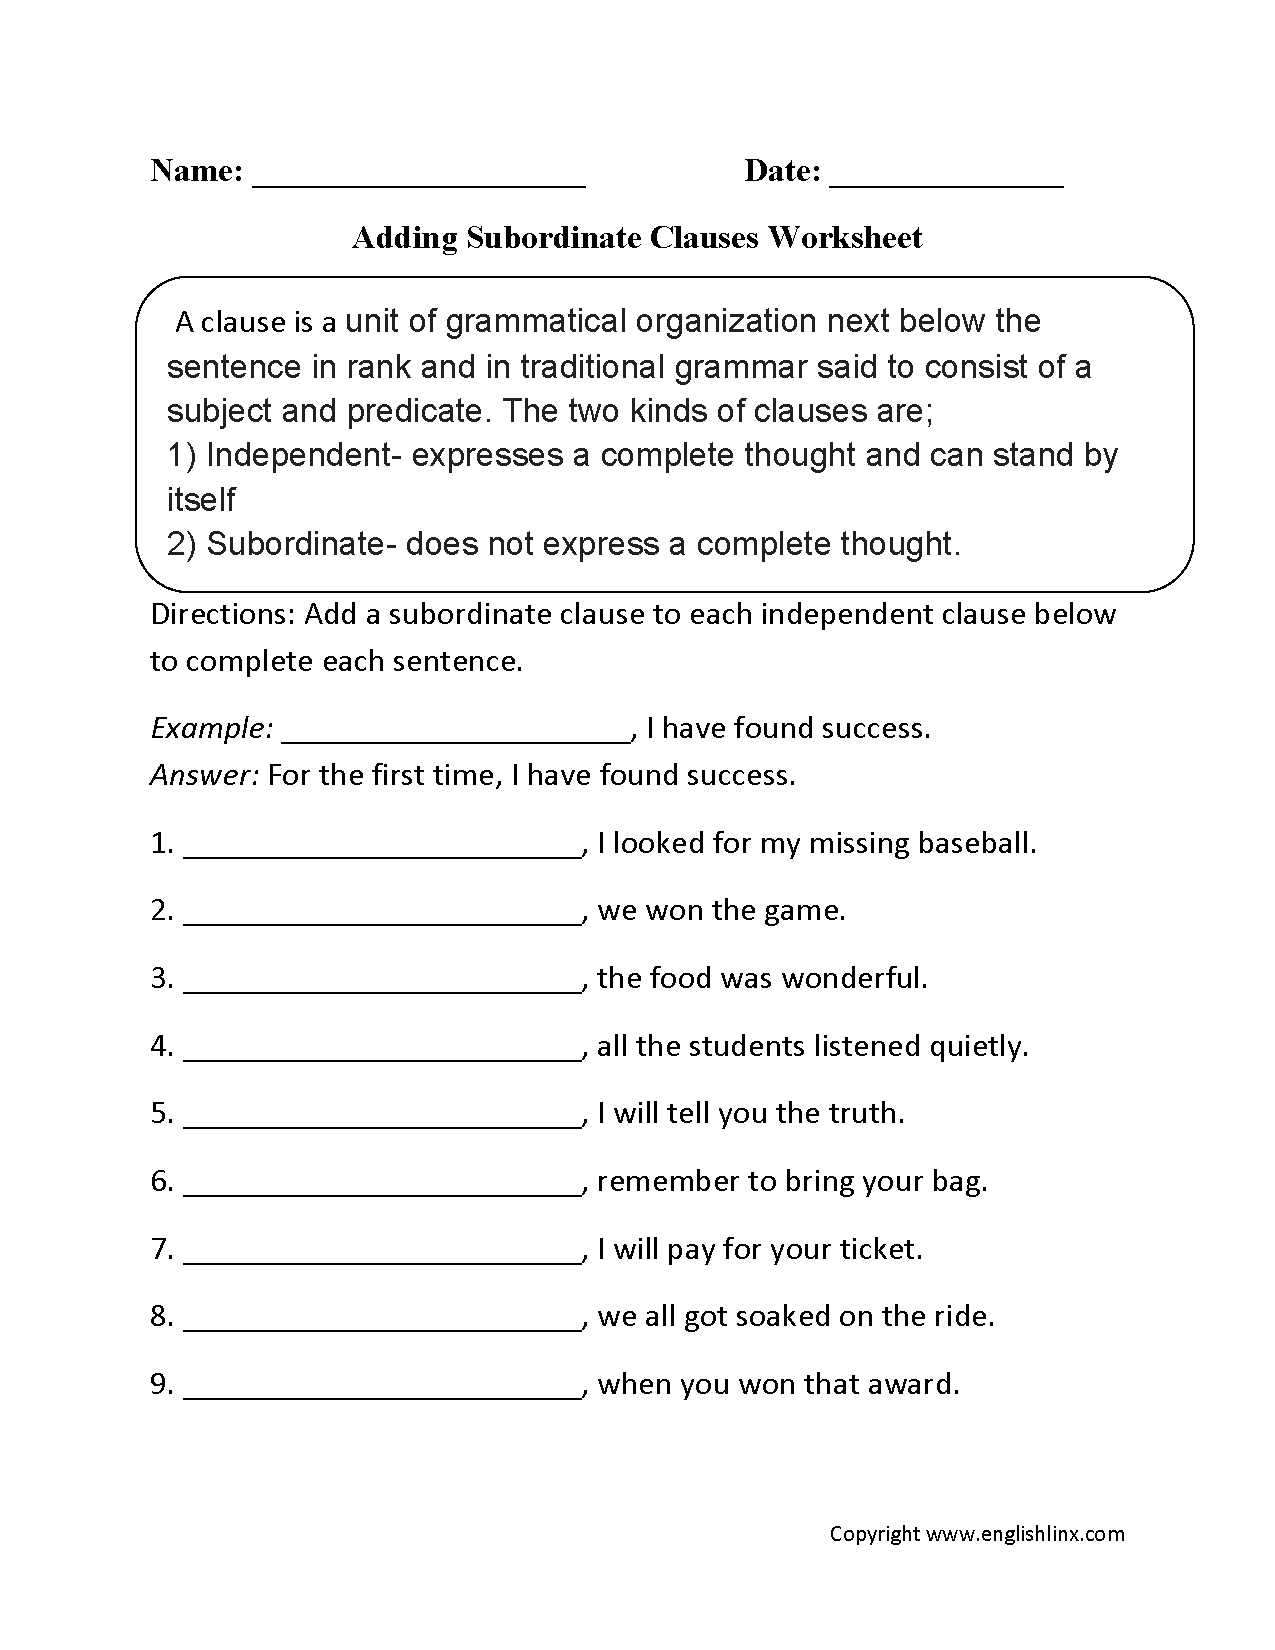 Worksheets Clauses And Phrases Worksheets adding subordinate clauses worksheet writing pinterest worksheets grammar activities and sentences